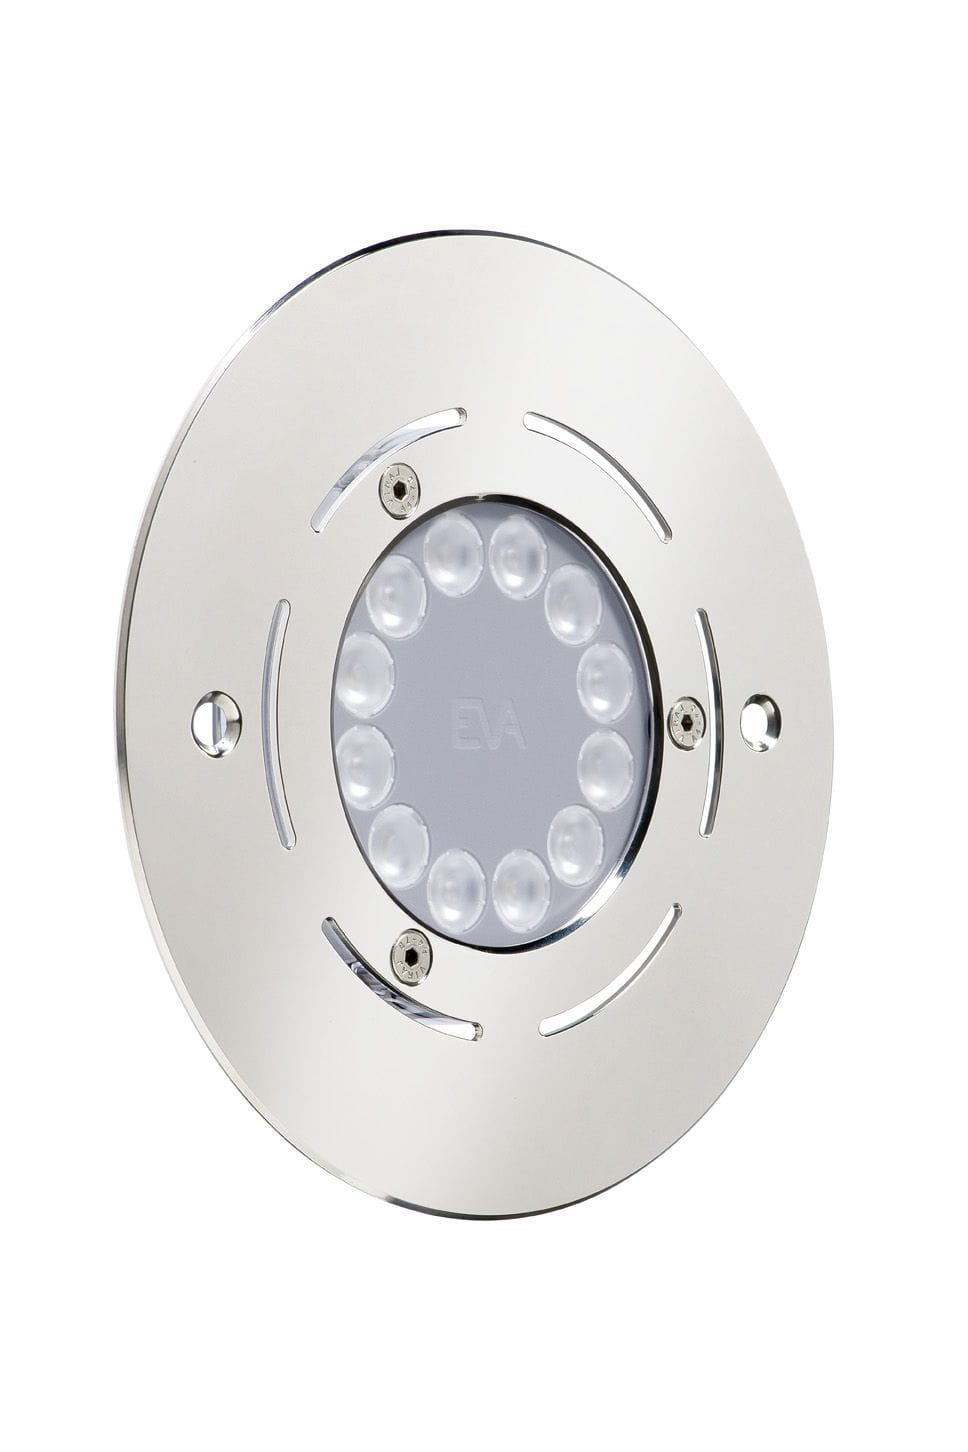 Recessed light fixture / LED / round / pool - EVA A12 40W LED ... for Underwater Light Fixture  70ref